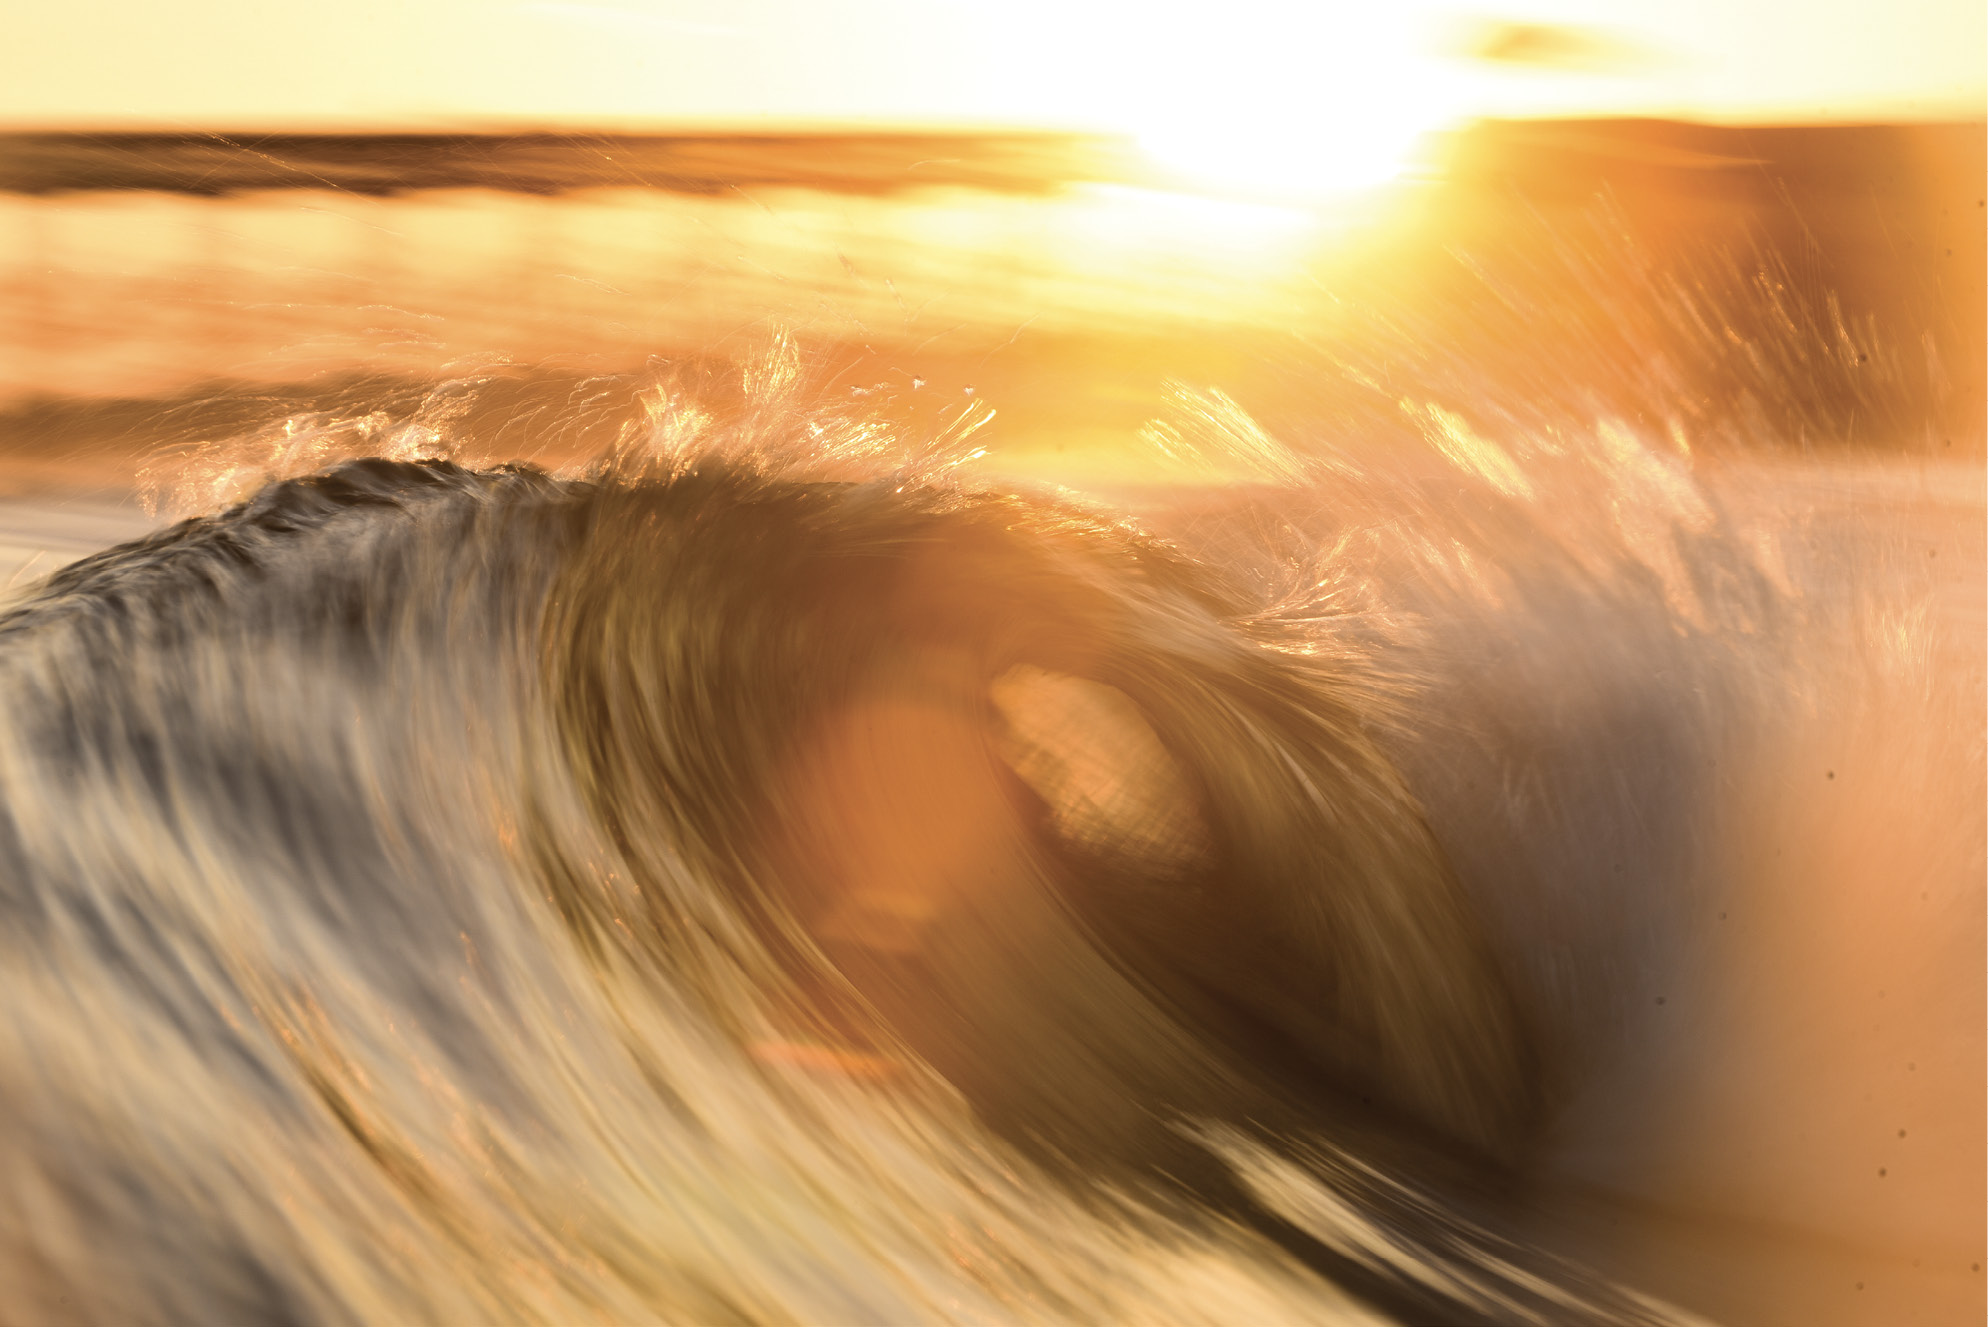 A setting sun and a slower shutter speed capture the movement of the waves.